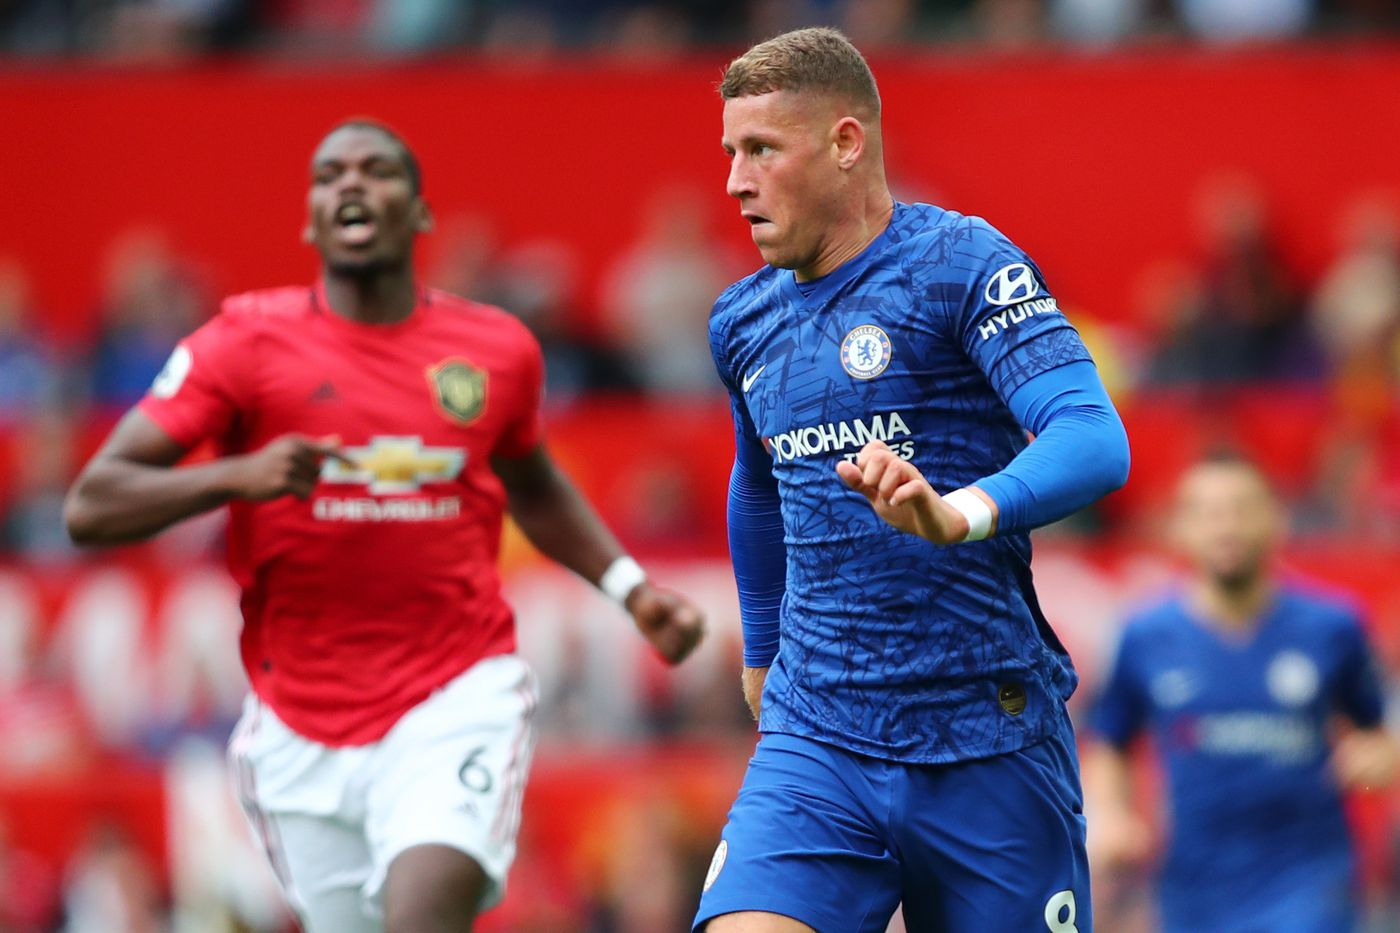 manchester united vs chelsea live streaming online free